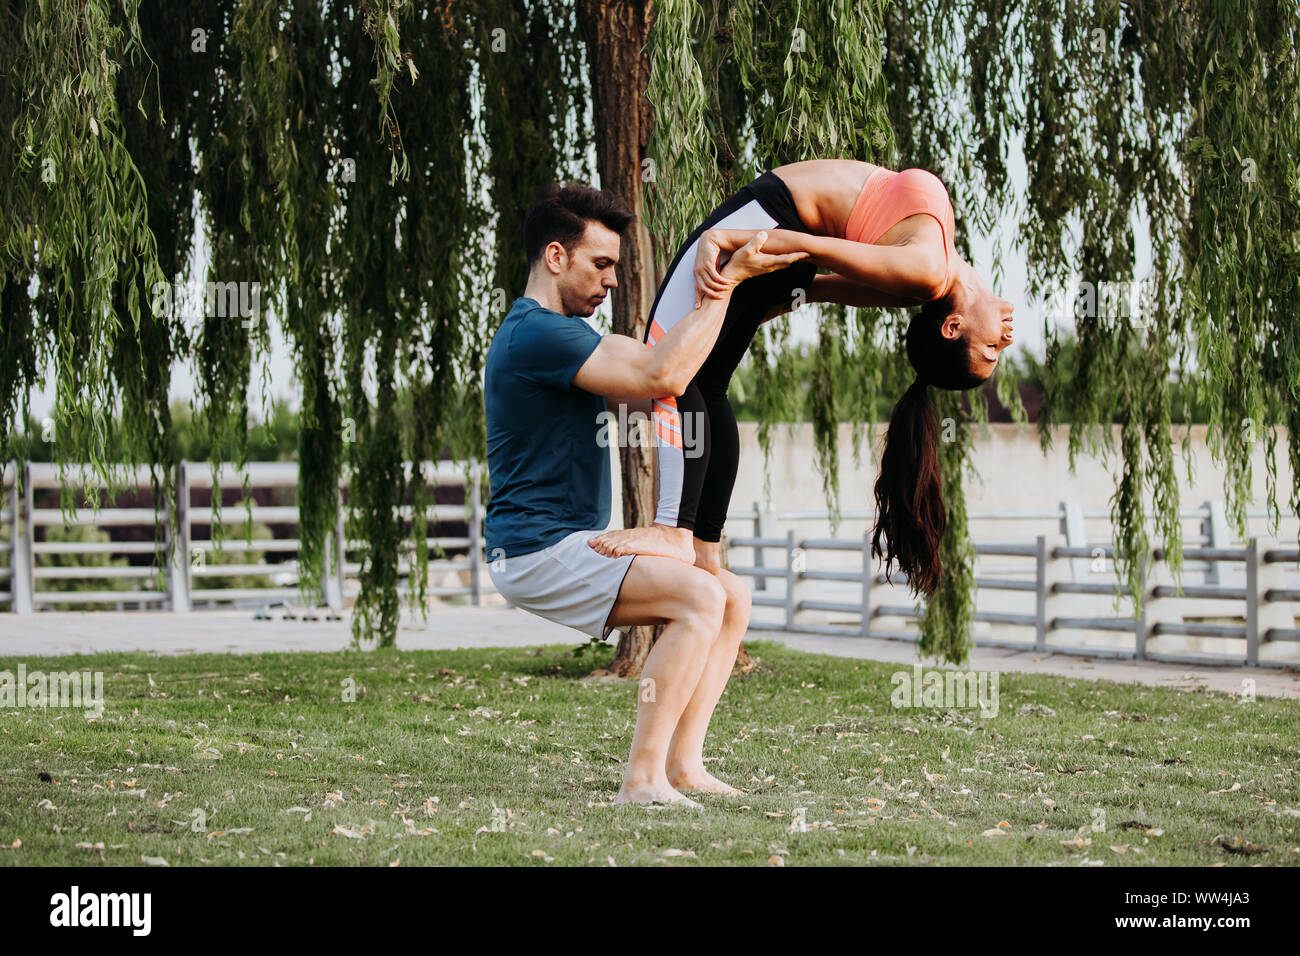 Latin Woman And Caucasian Shadow Do Yoga Exercises In A Park In Madrid Balance And Concentration In Couple Stock Photo Alamy